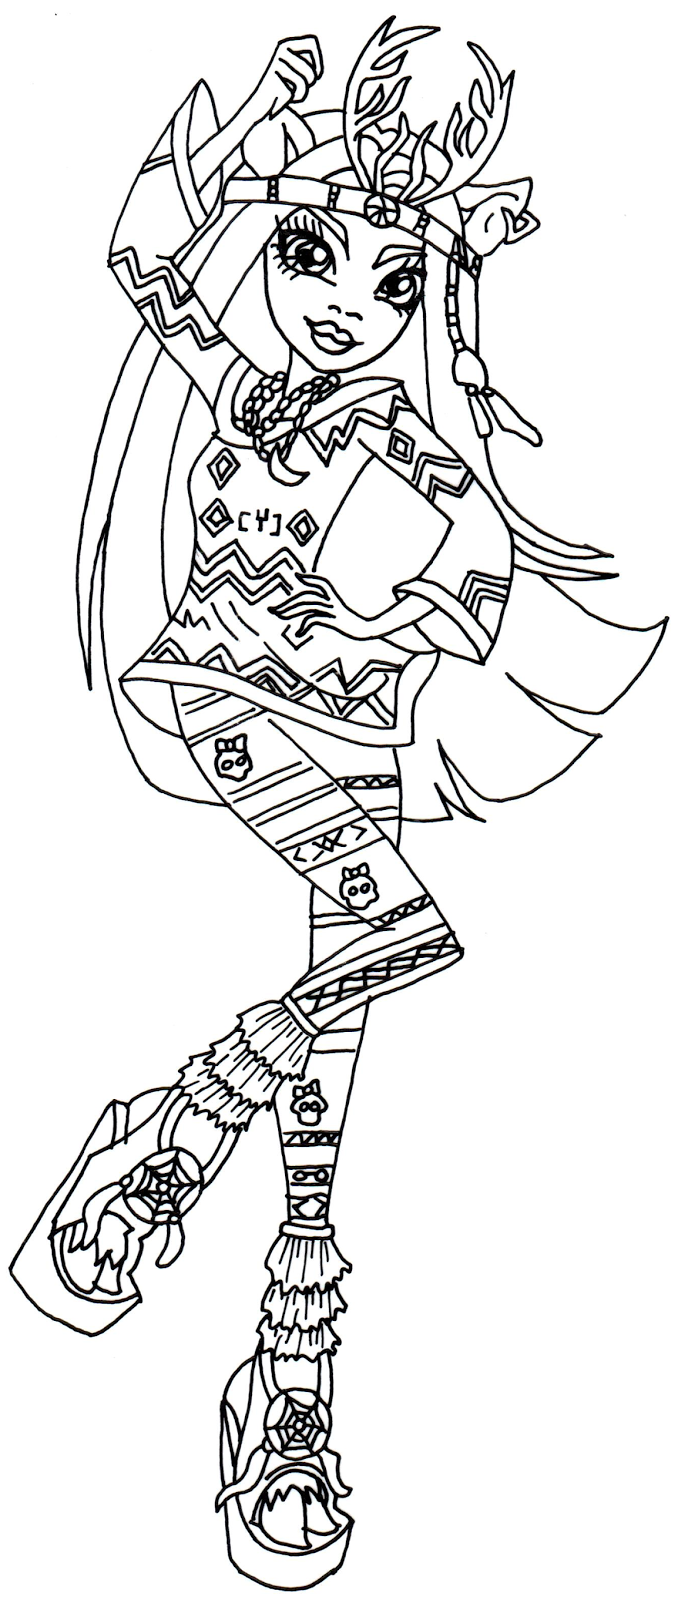 Coloring pages printable monster high